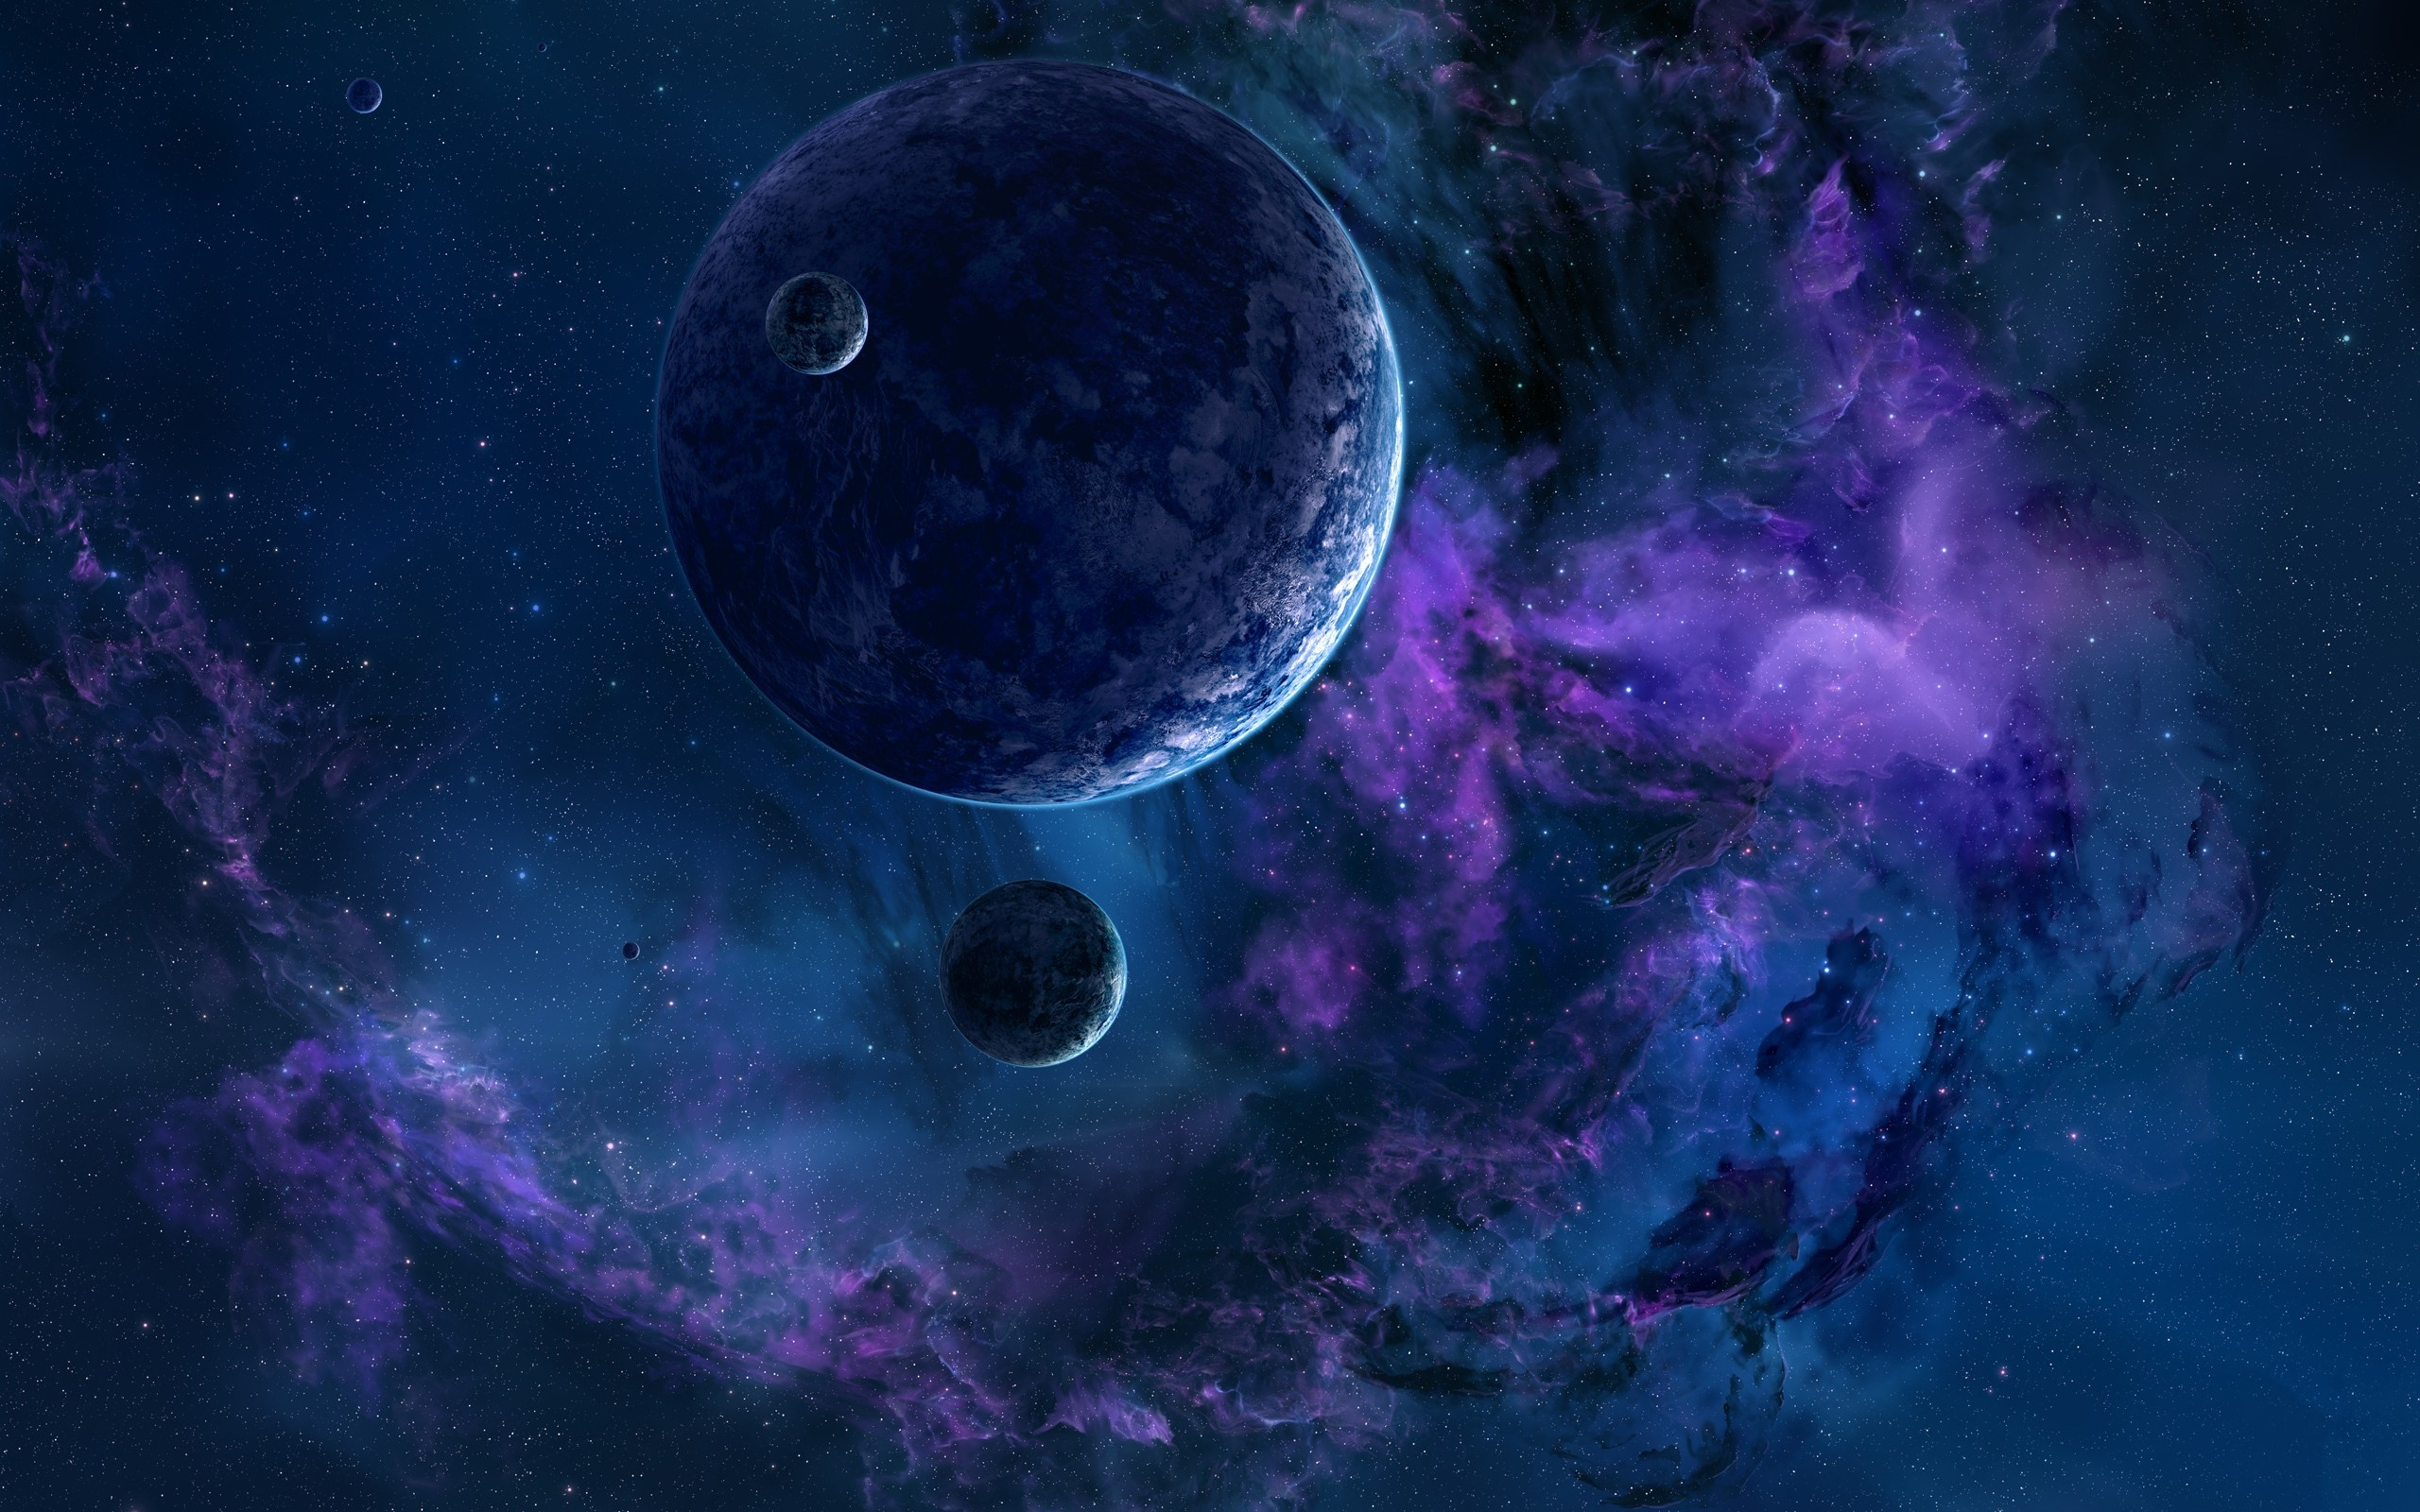 Space 3d art planet stars nebula g wallpaper 2560x1600 for 3d outer space